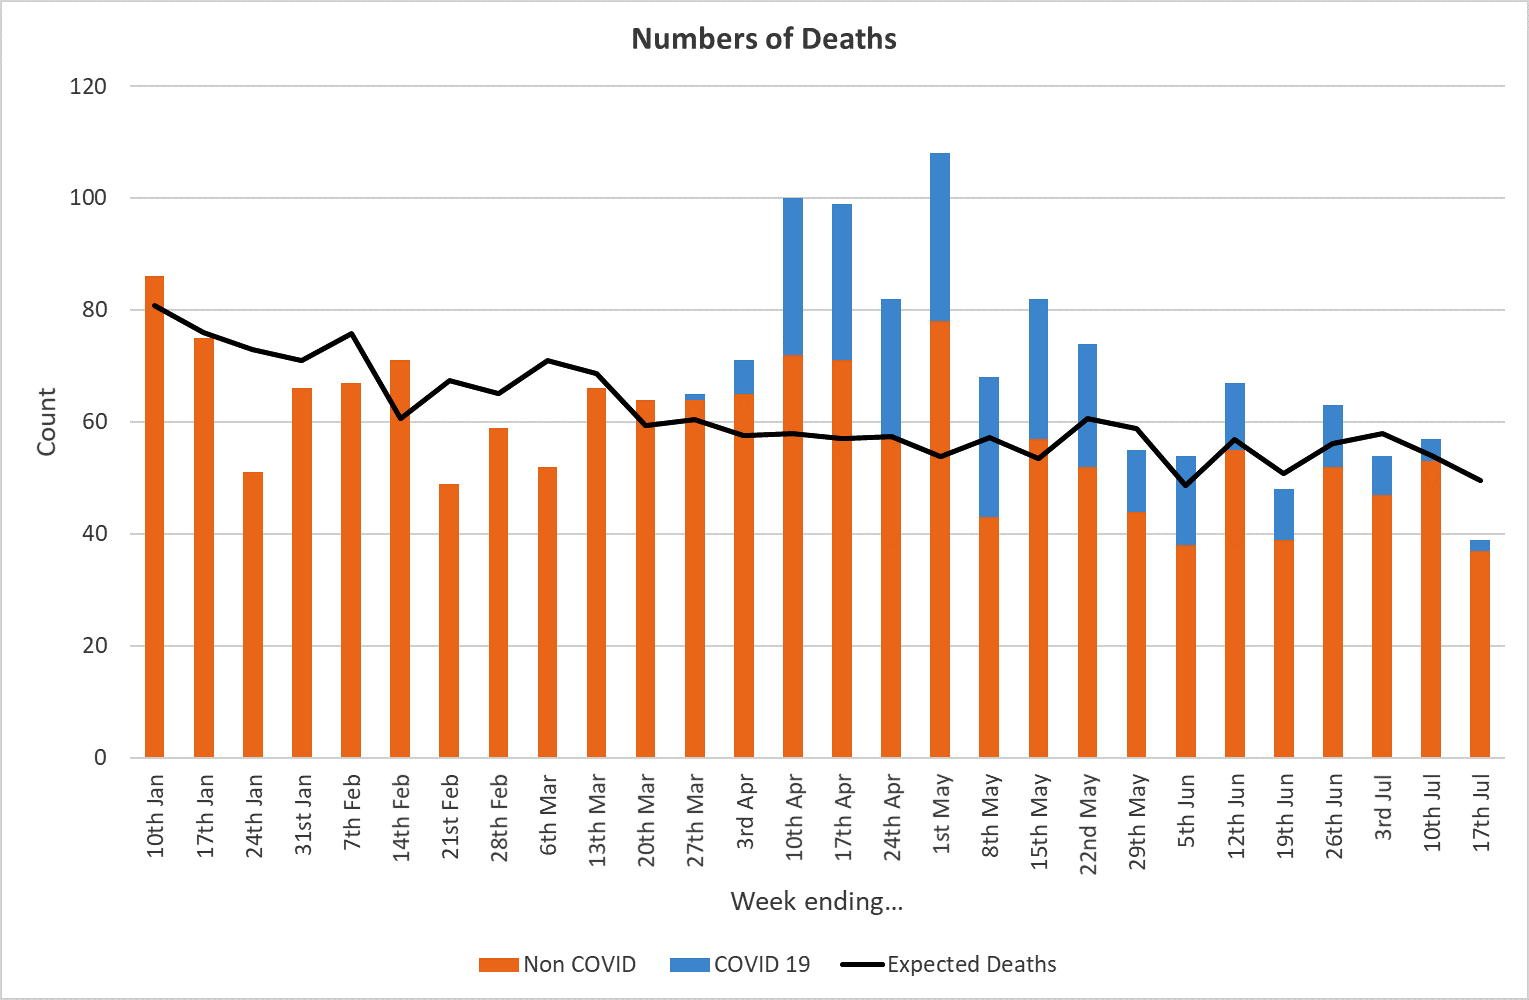 Graph showing number of deaths in Doncaster up to 31 July